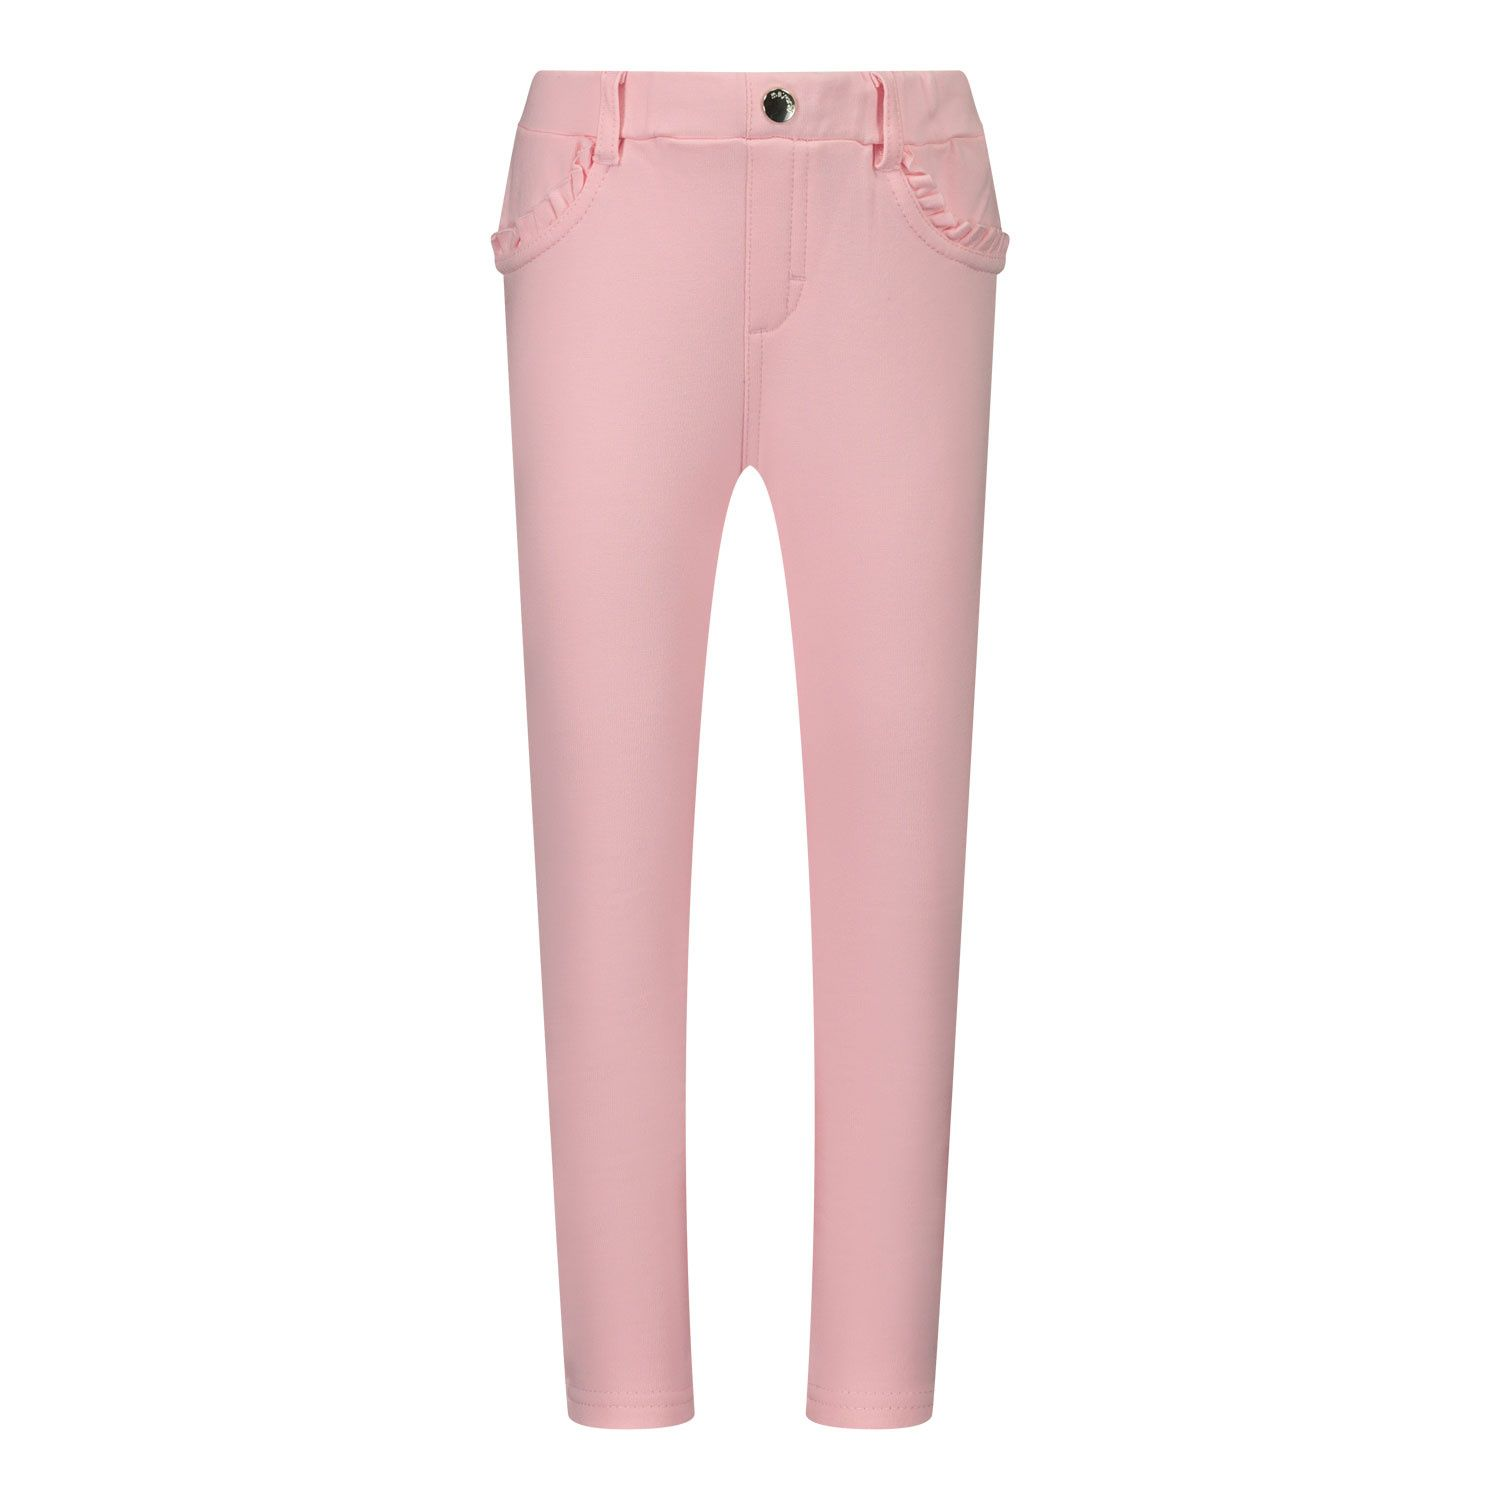 Picture of Mayoral 560 baby pants light pink